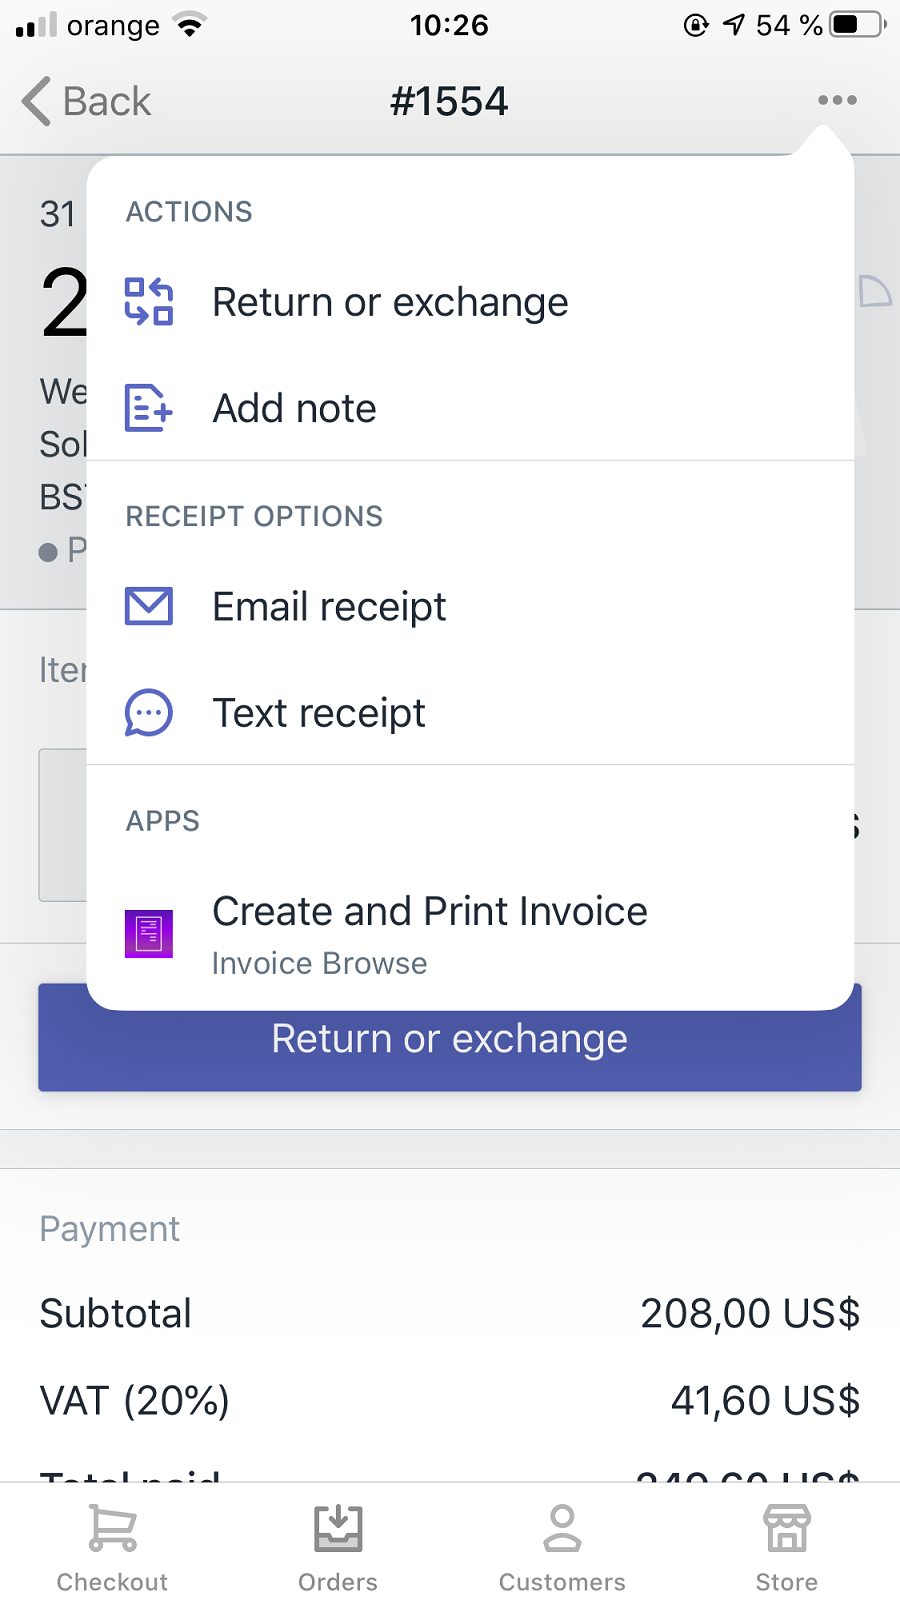 POS support. Print Invoices directly from your POS with one tap!